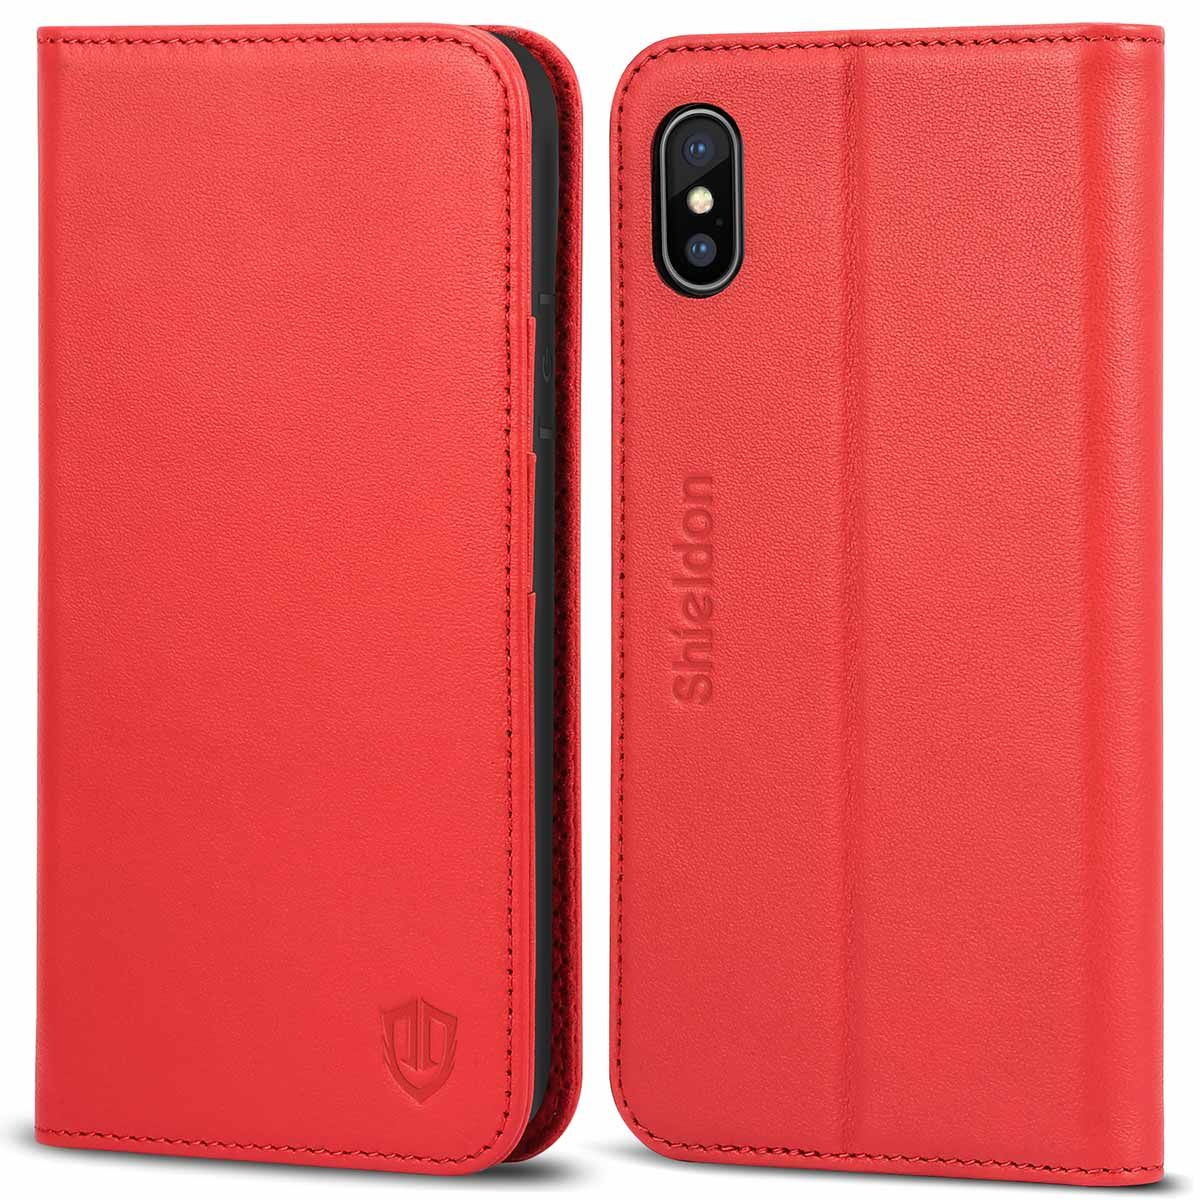 purchase cheap 6a3fa 78414 SHIELDON iPhone X Genuine Leather Wallet Case, Magnetic Closure, Flip  Cover, Kickstand